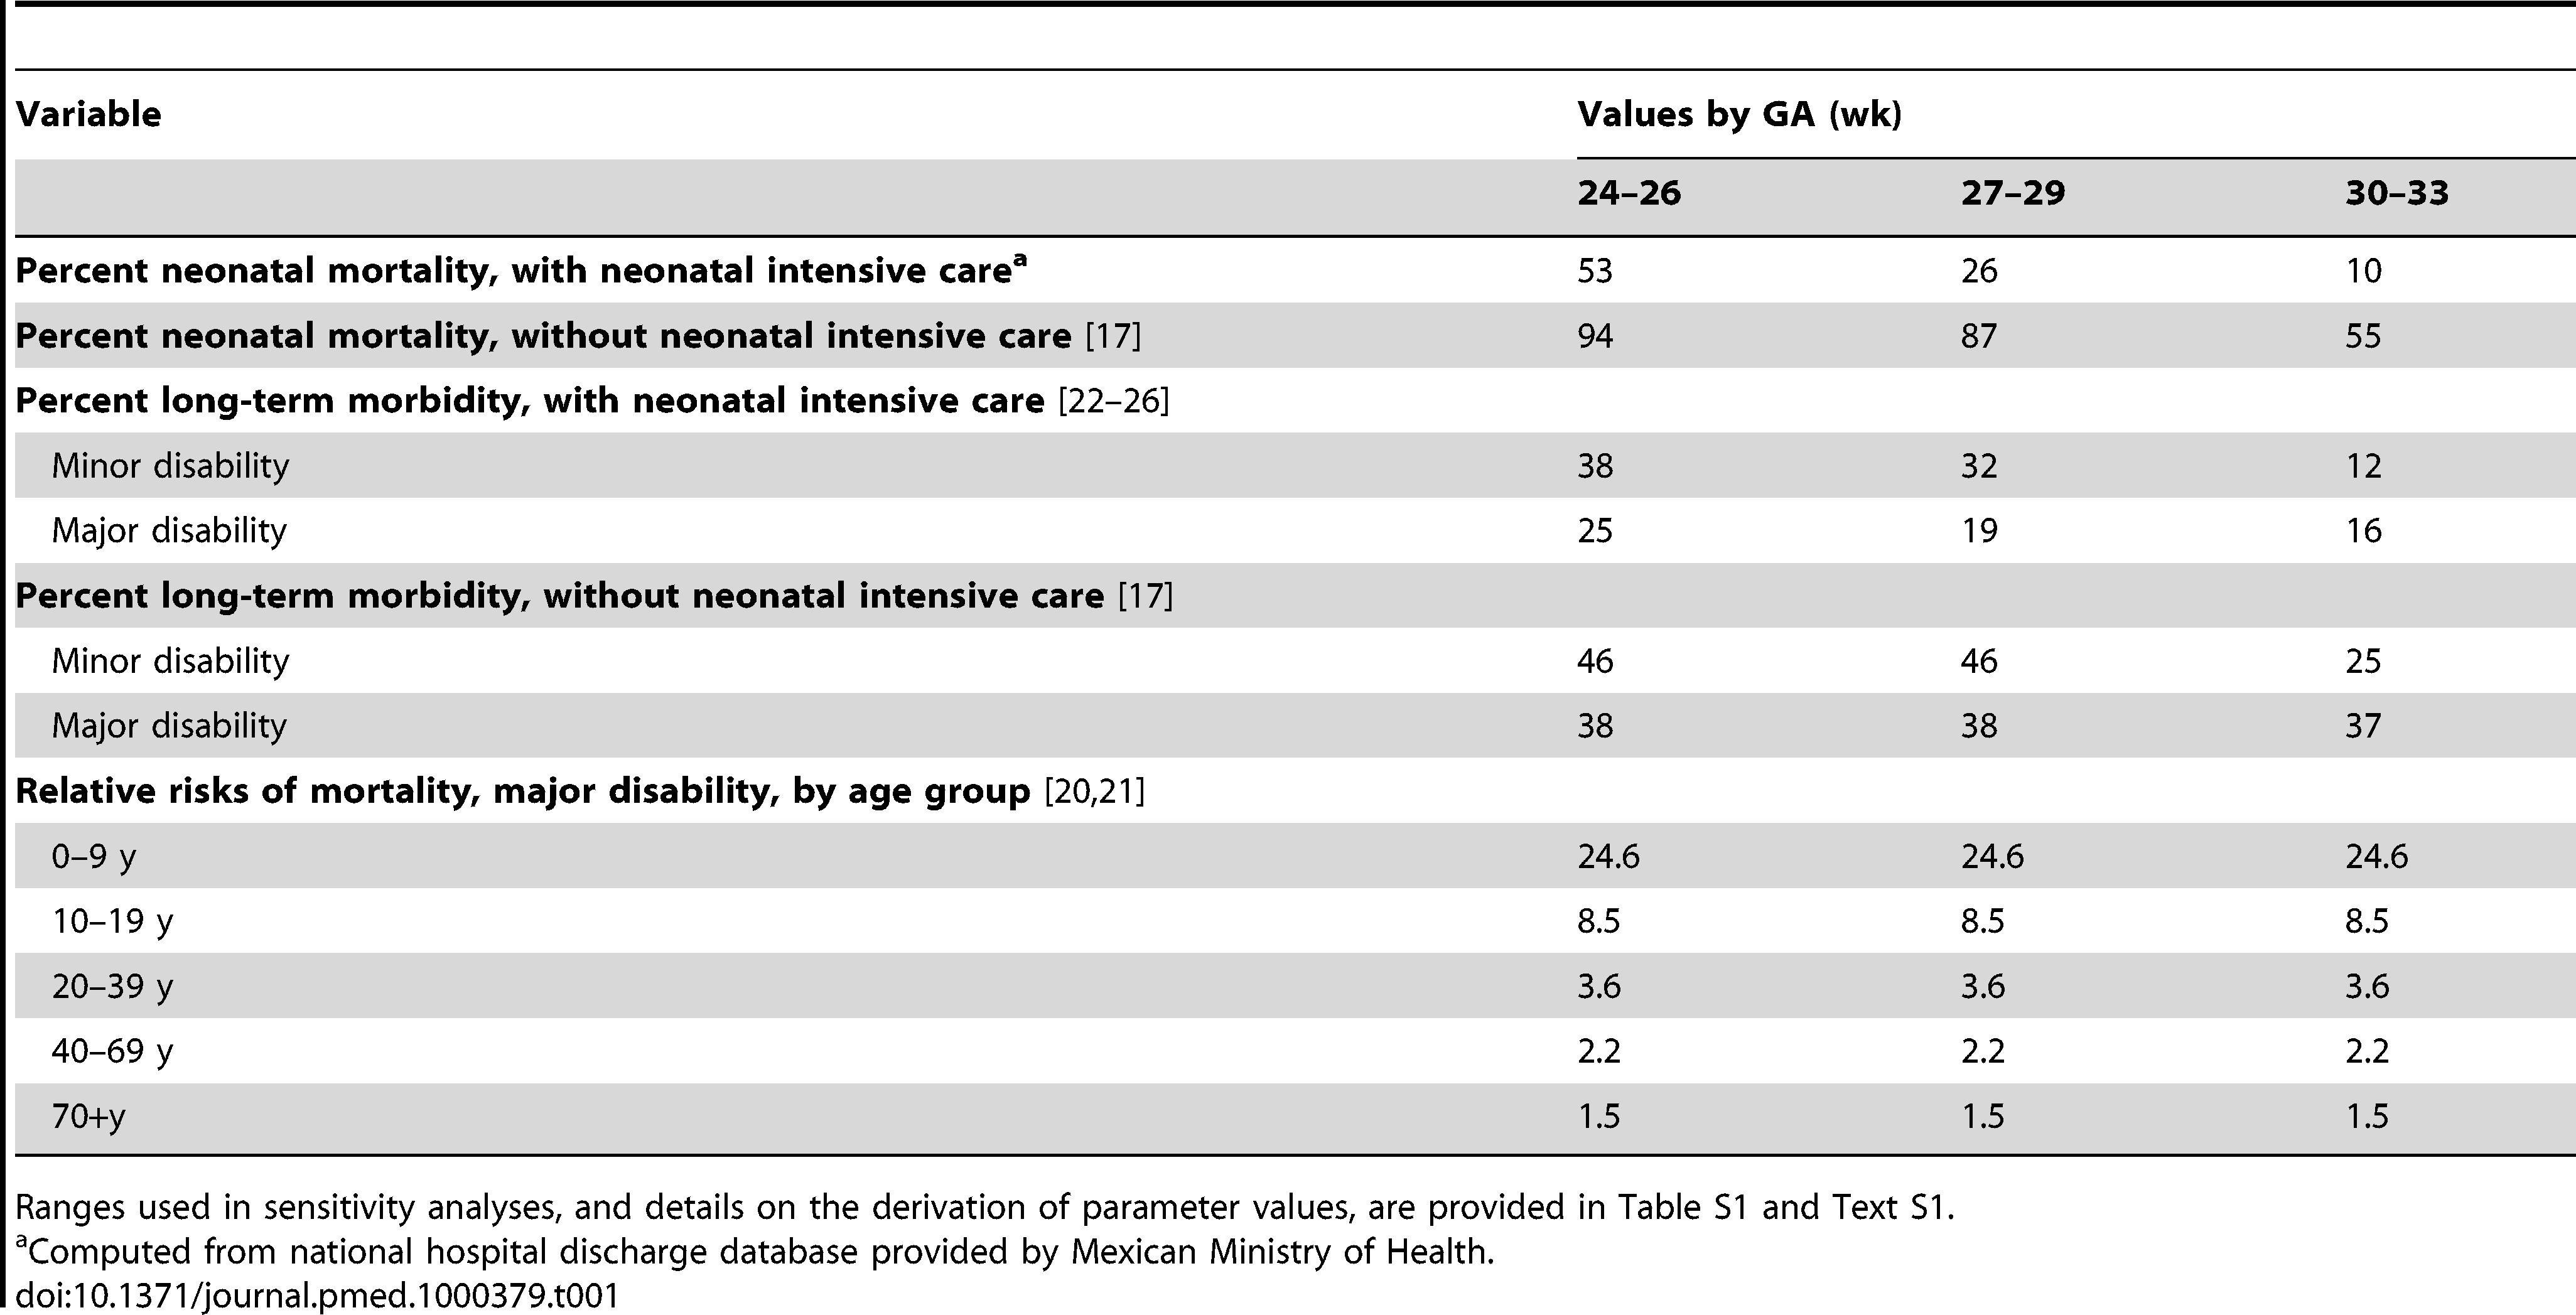 Natural history and clinical variables, base-case values.